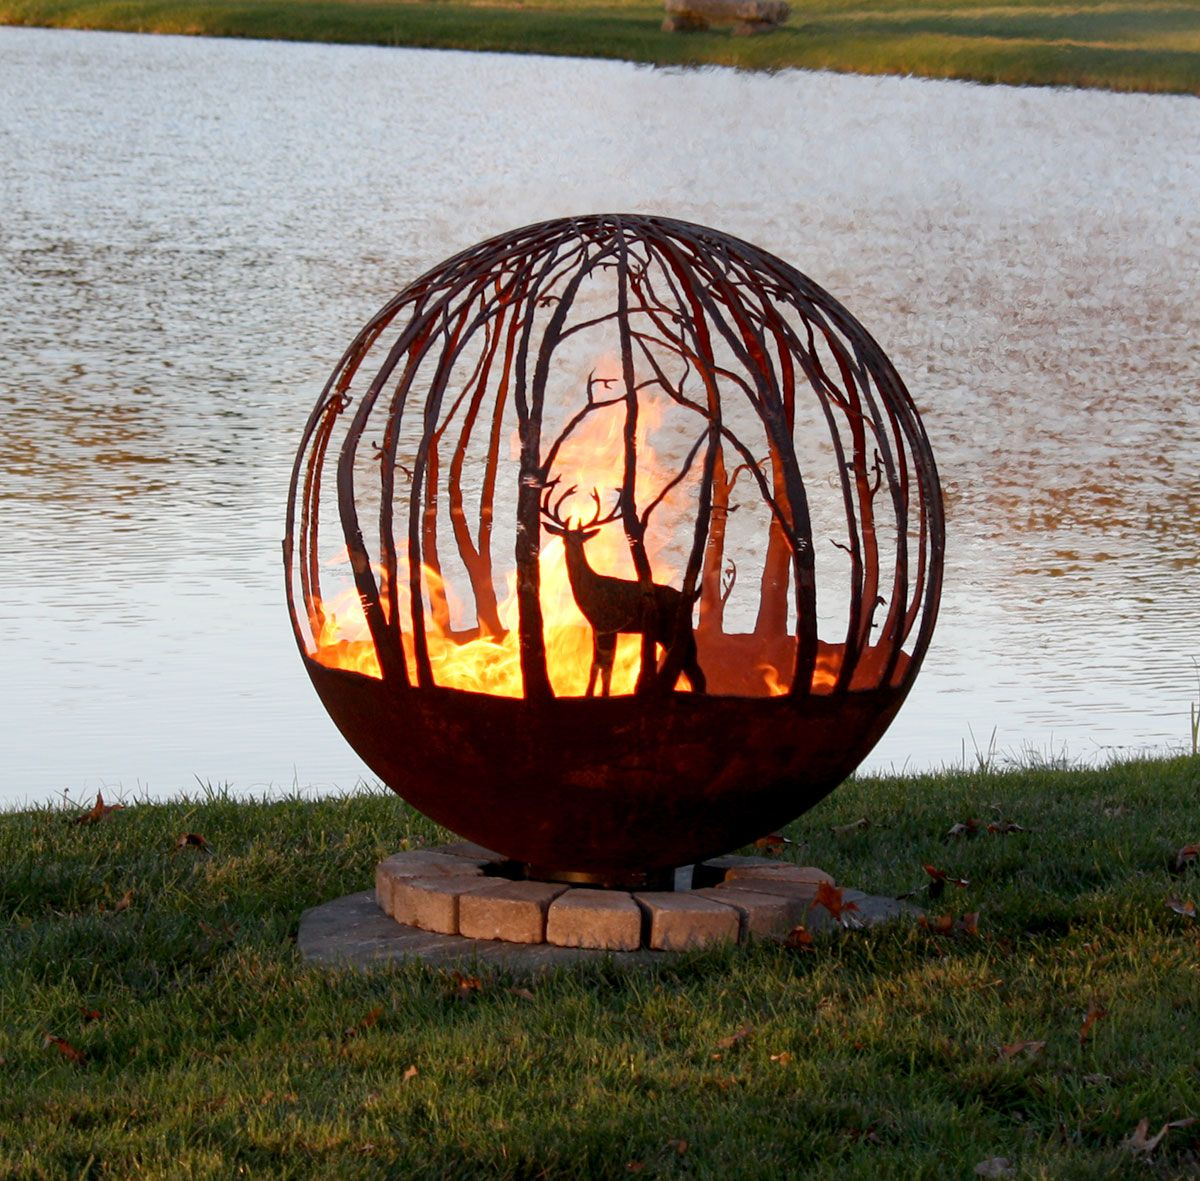 Winter Woods Fire Pit Sphere Design Your Own Fire Pit Sphere Fire Pit Images Fire Pit Gallery